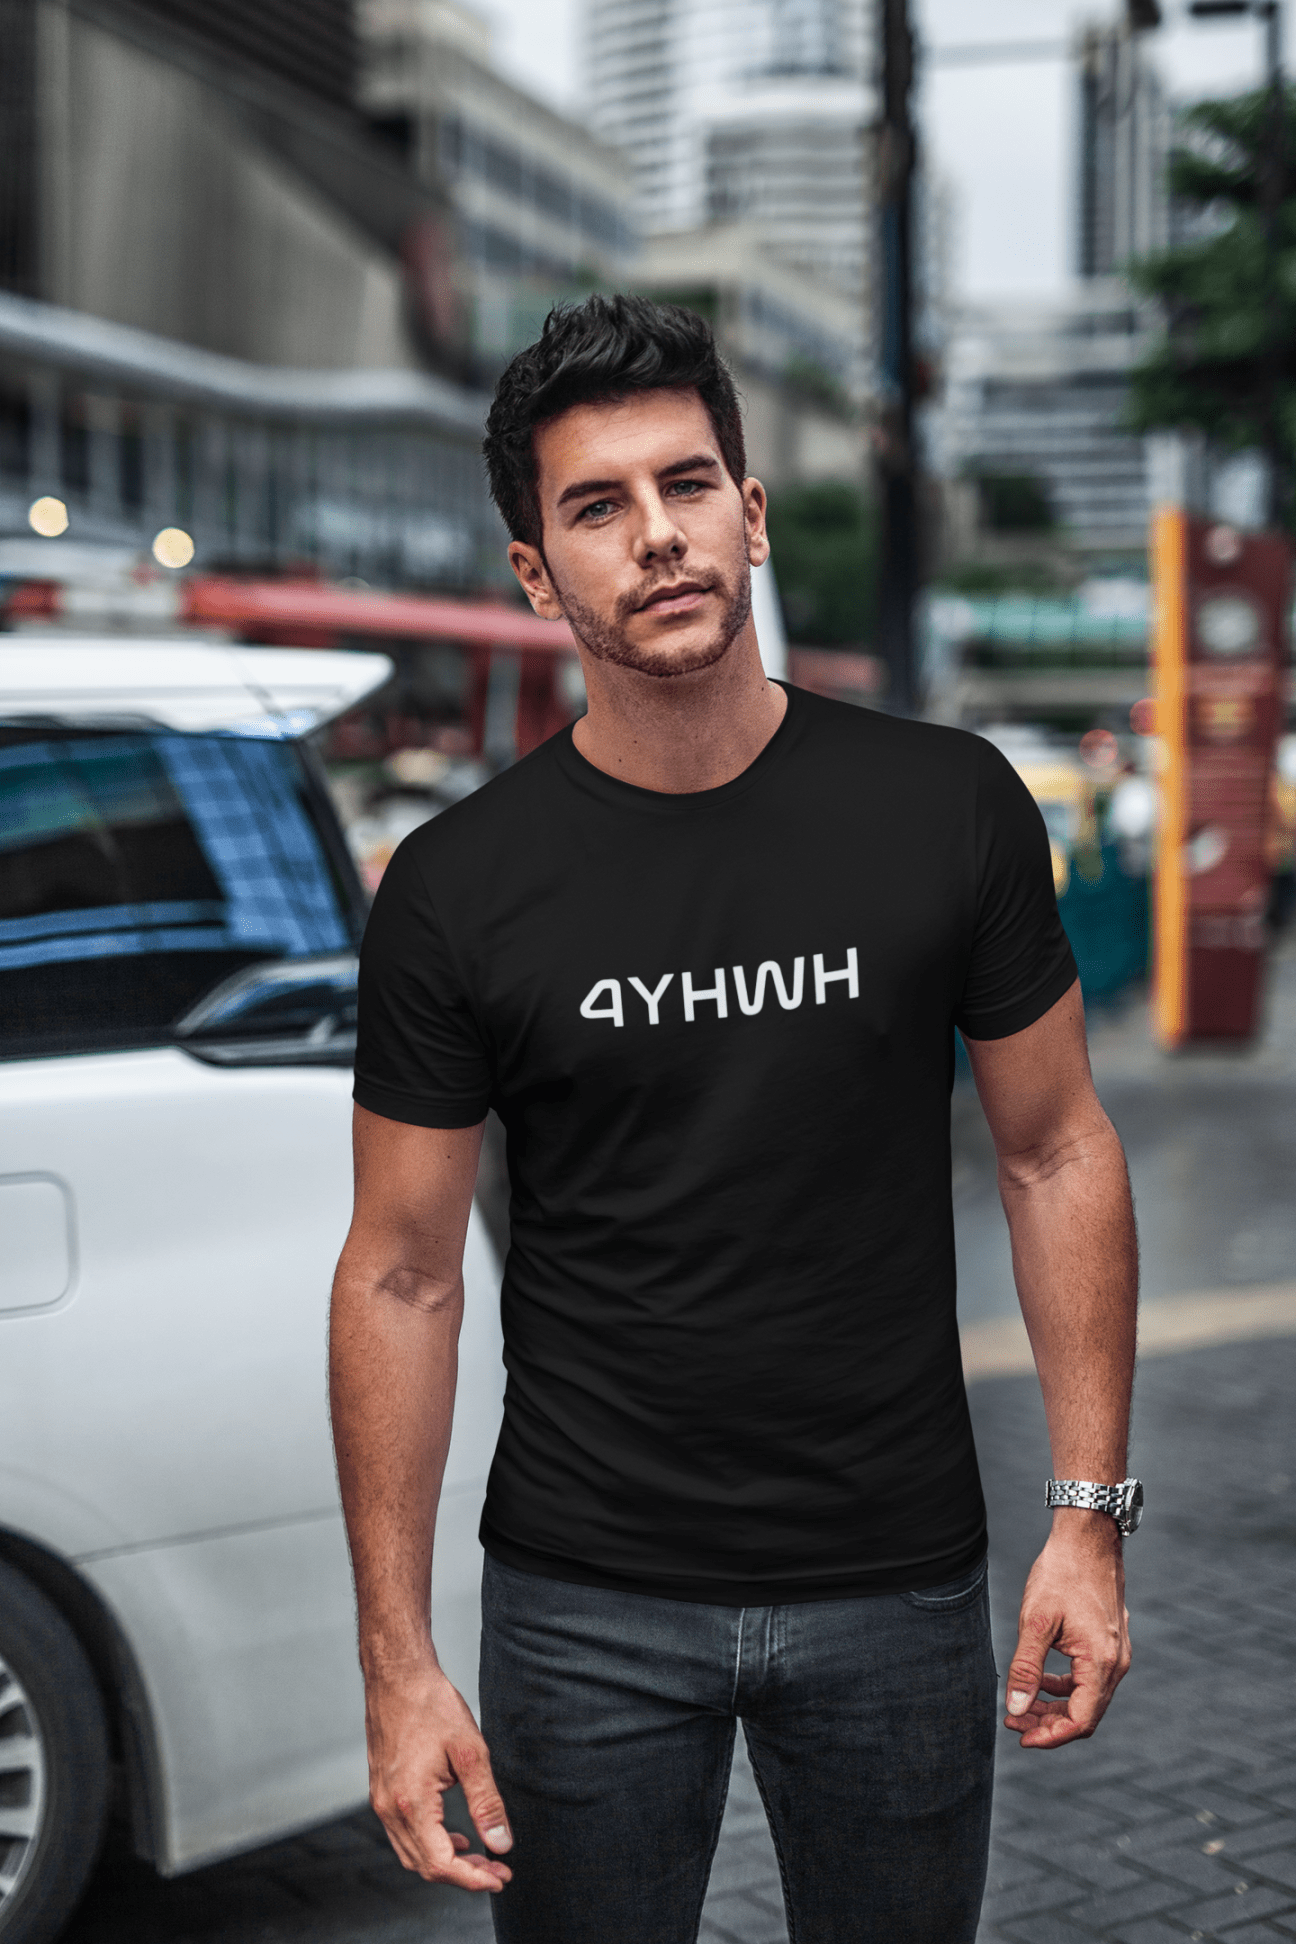 Black 4YHWH Christian Unisex TShirt Funny shirts for